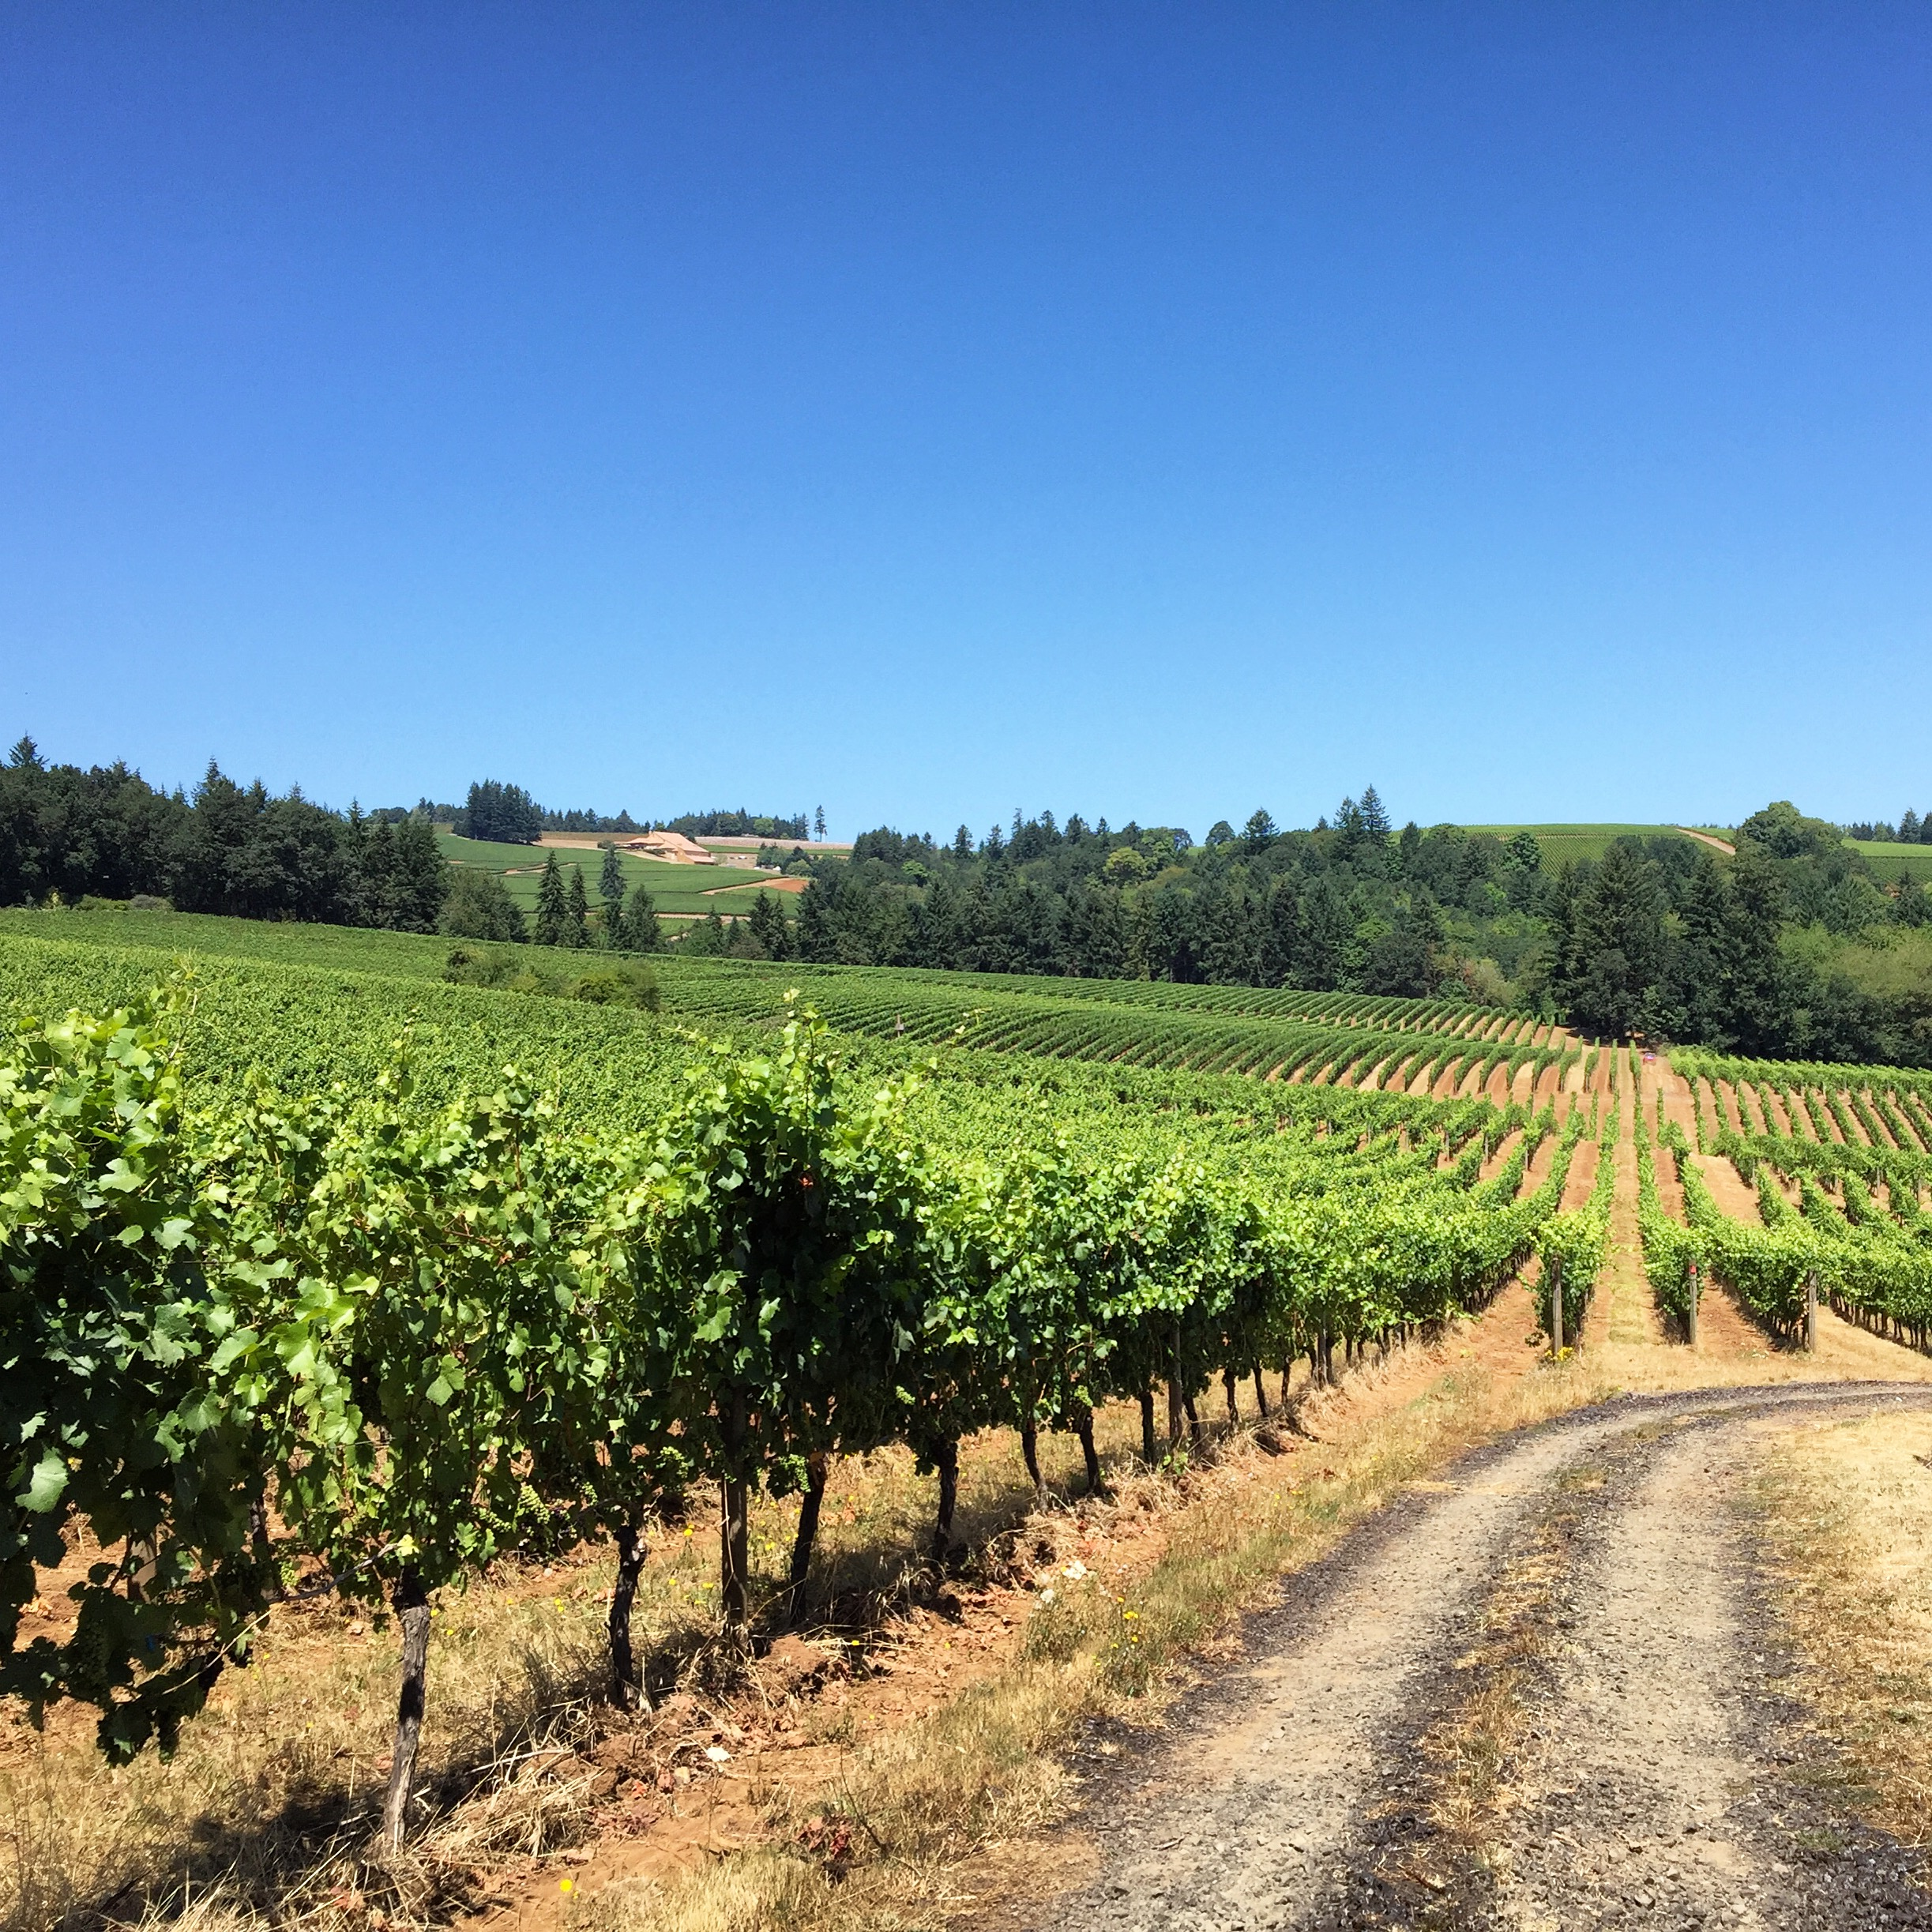 Take a Weekend Wine Trip to Oregon's Willamette Valley (Architectural Digest)   An easy drive from Portland will take you to one of the best under-the-radar wine destinations